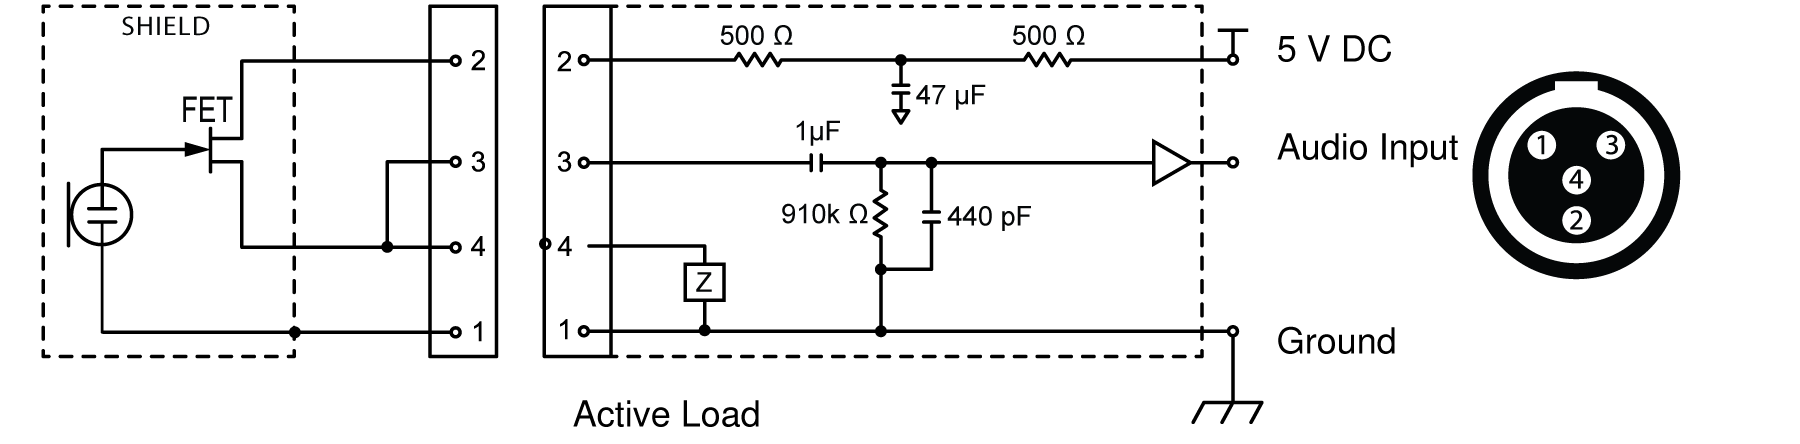 hight resolution of receiver output connections